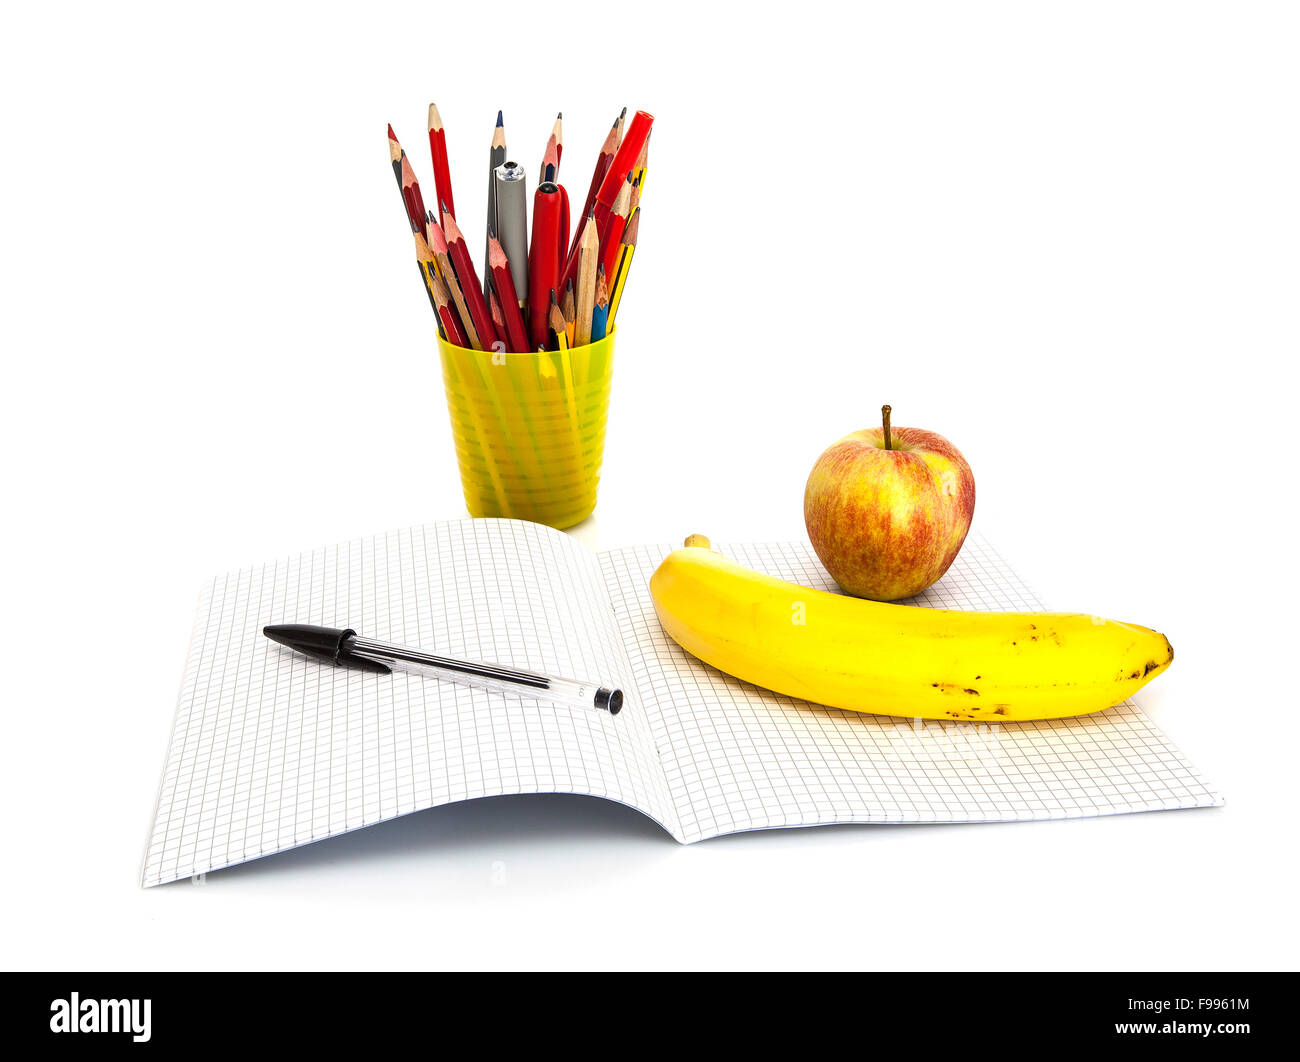 School and office stationary isolated on white. Back to school concept - Stock Image